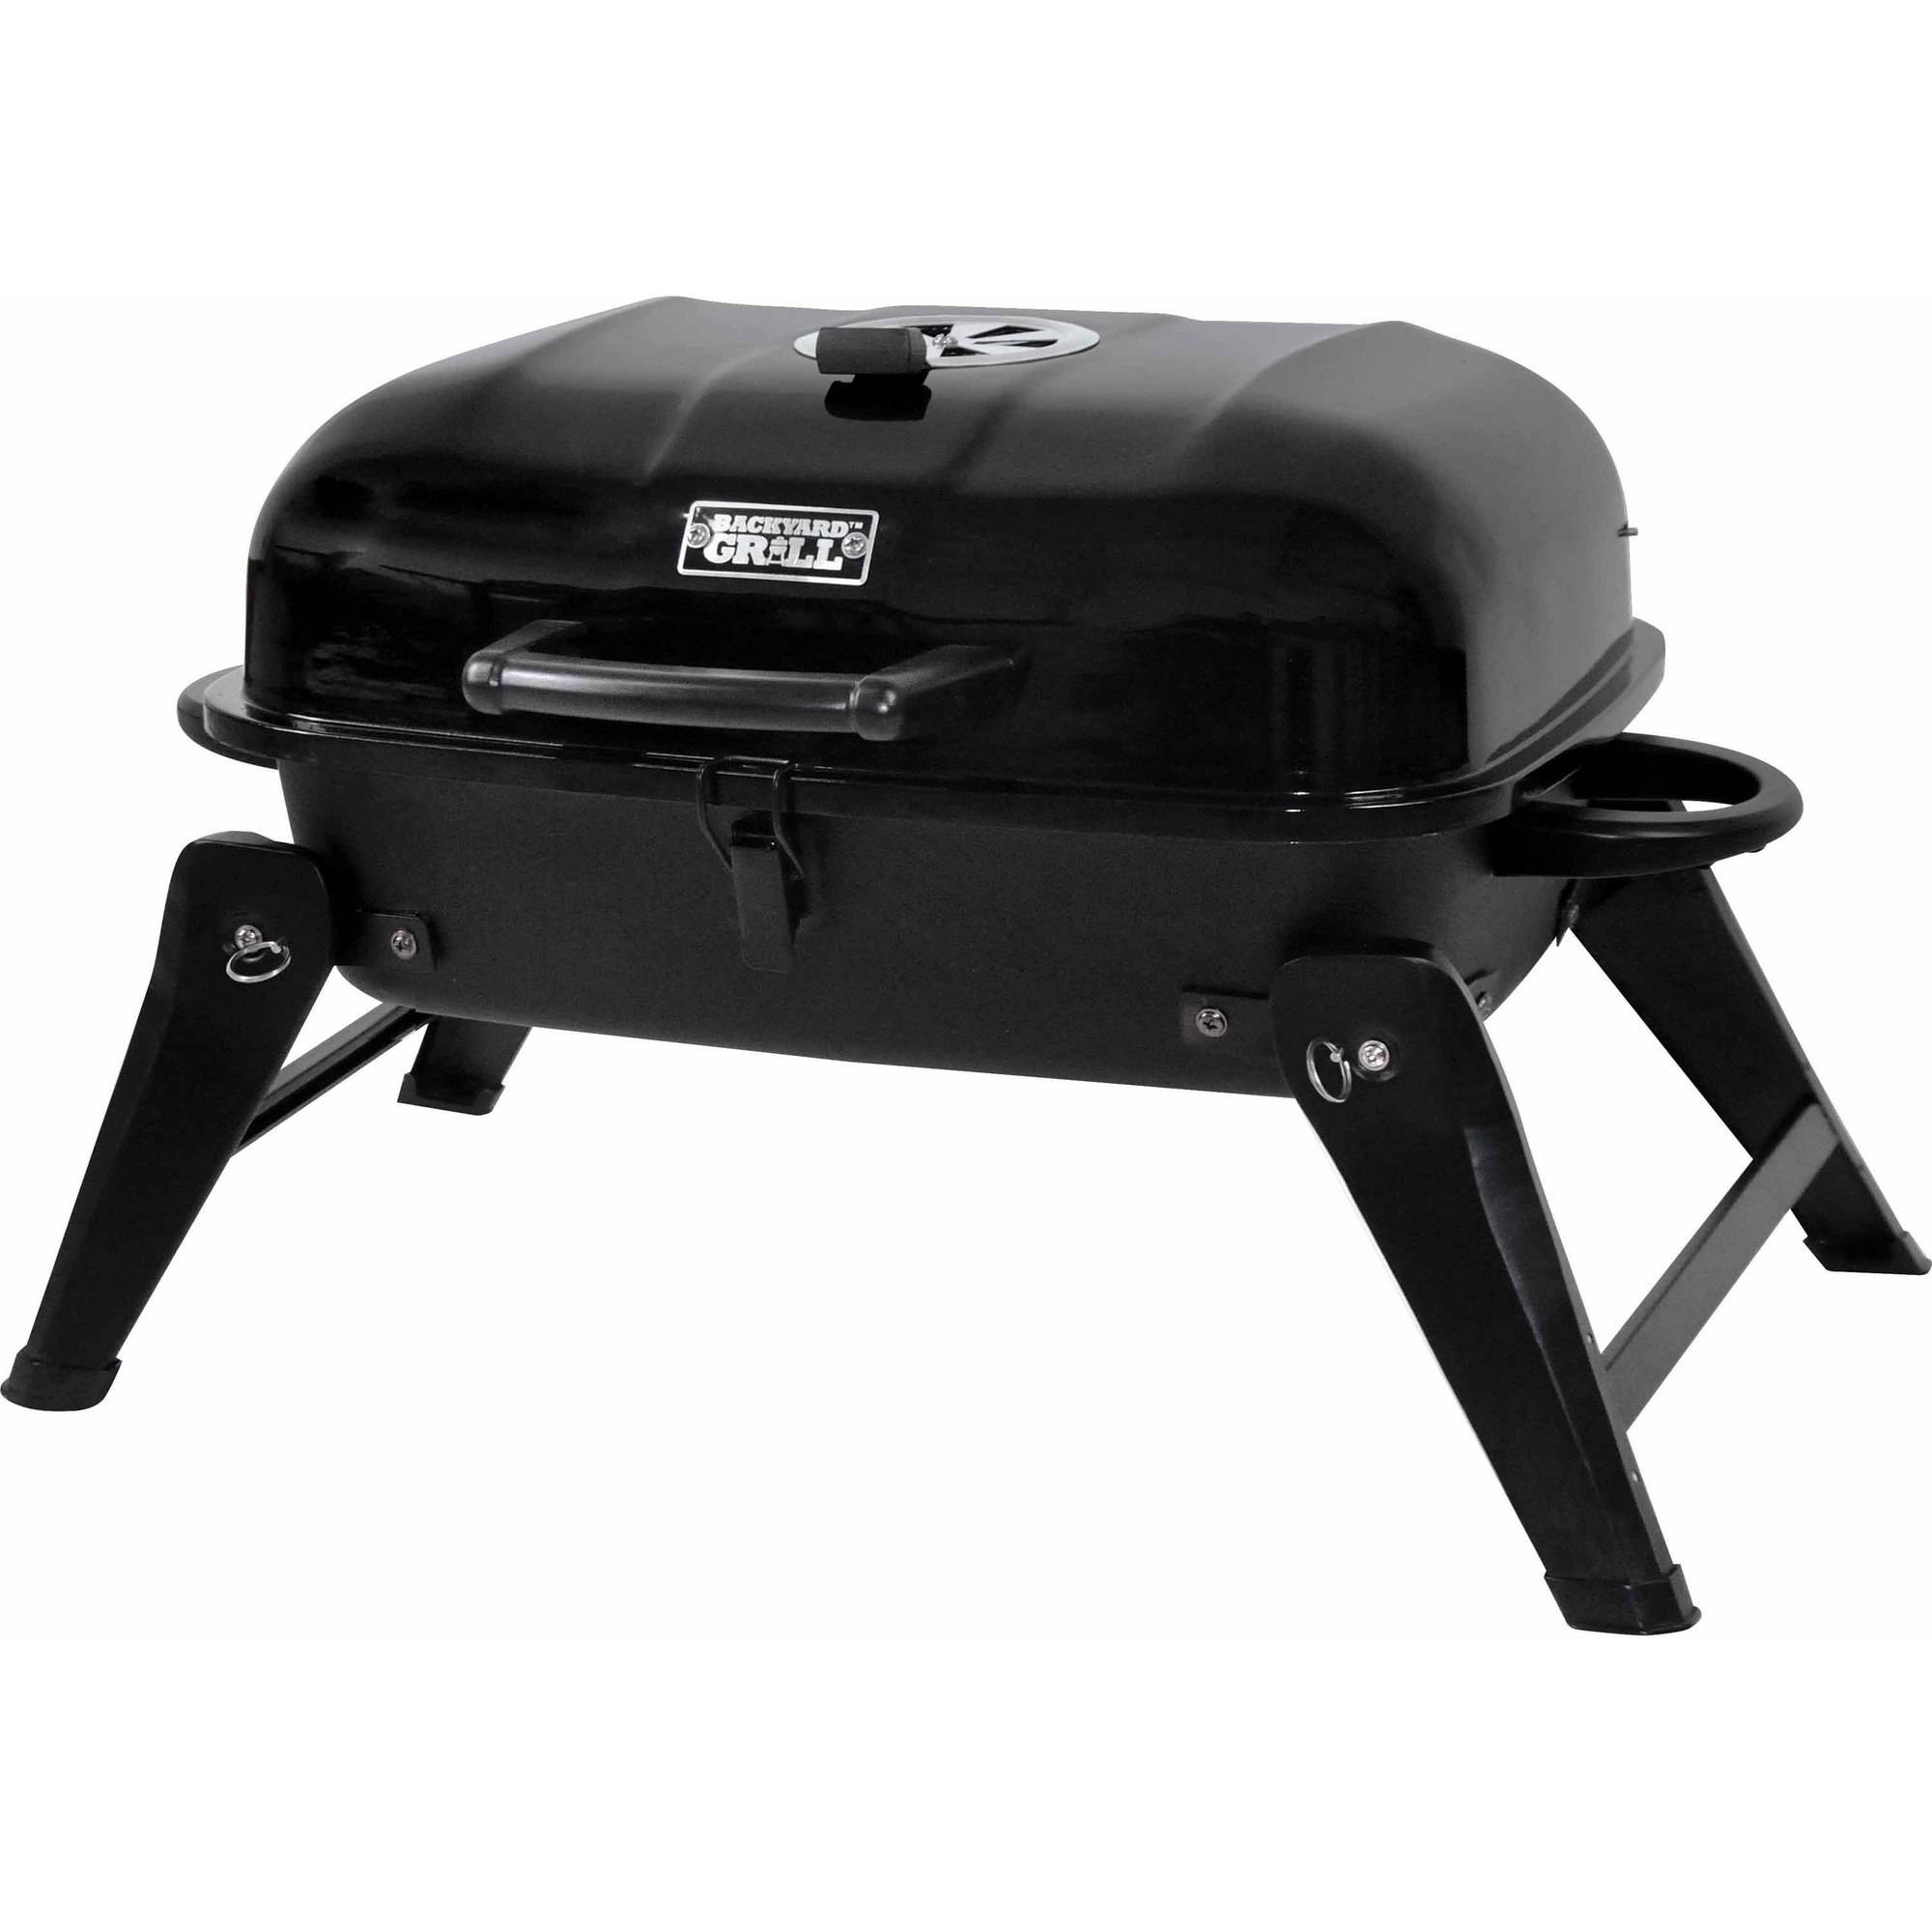 Backyard Grill Portable Charcoal Tabletop Grill